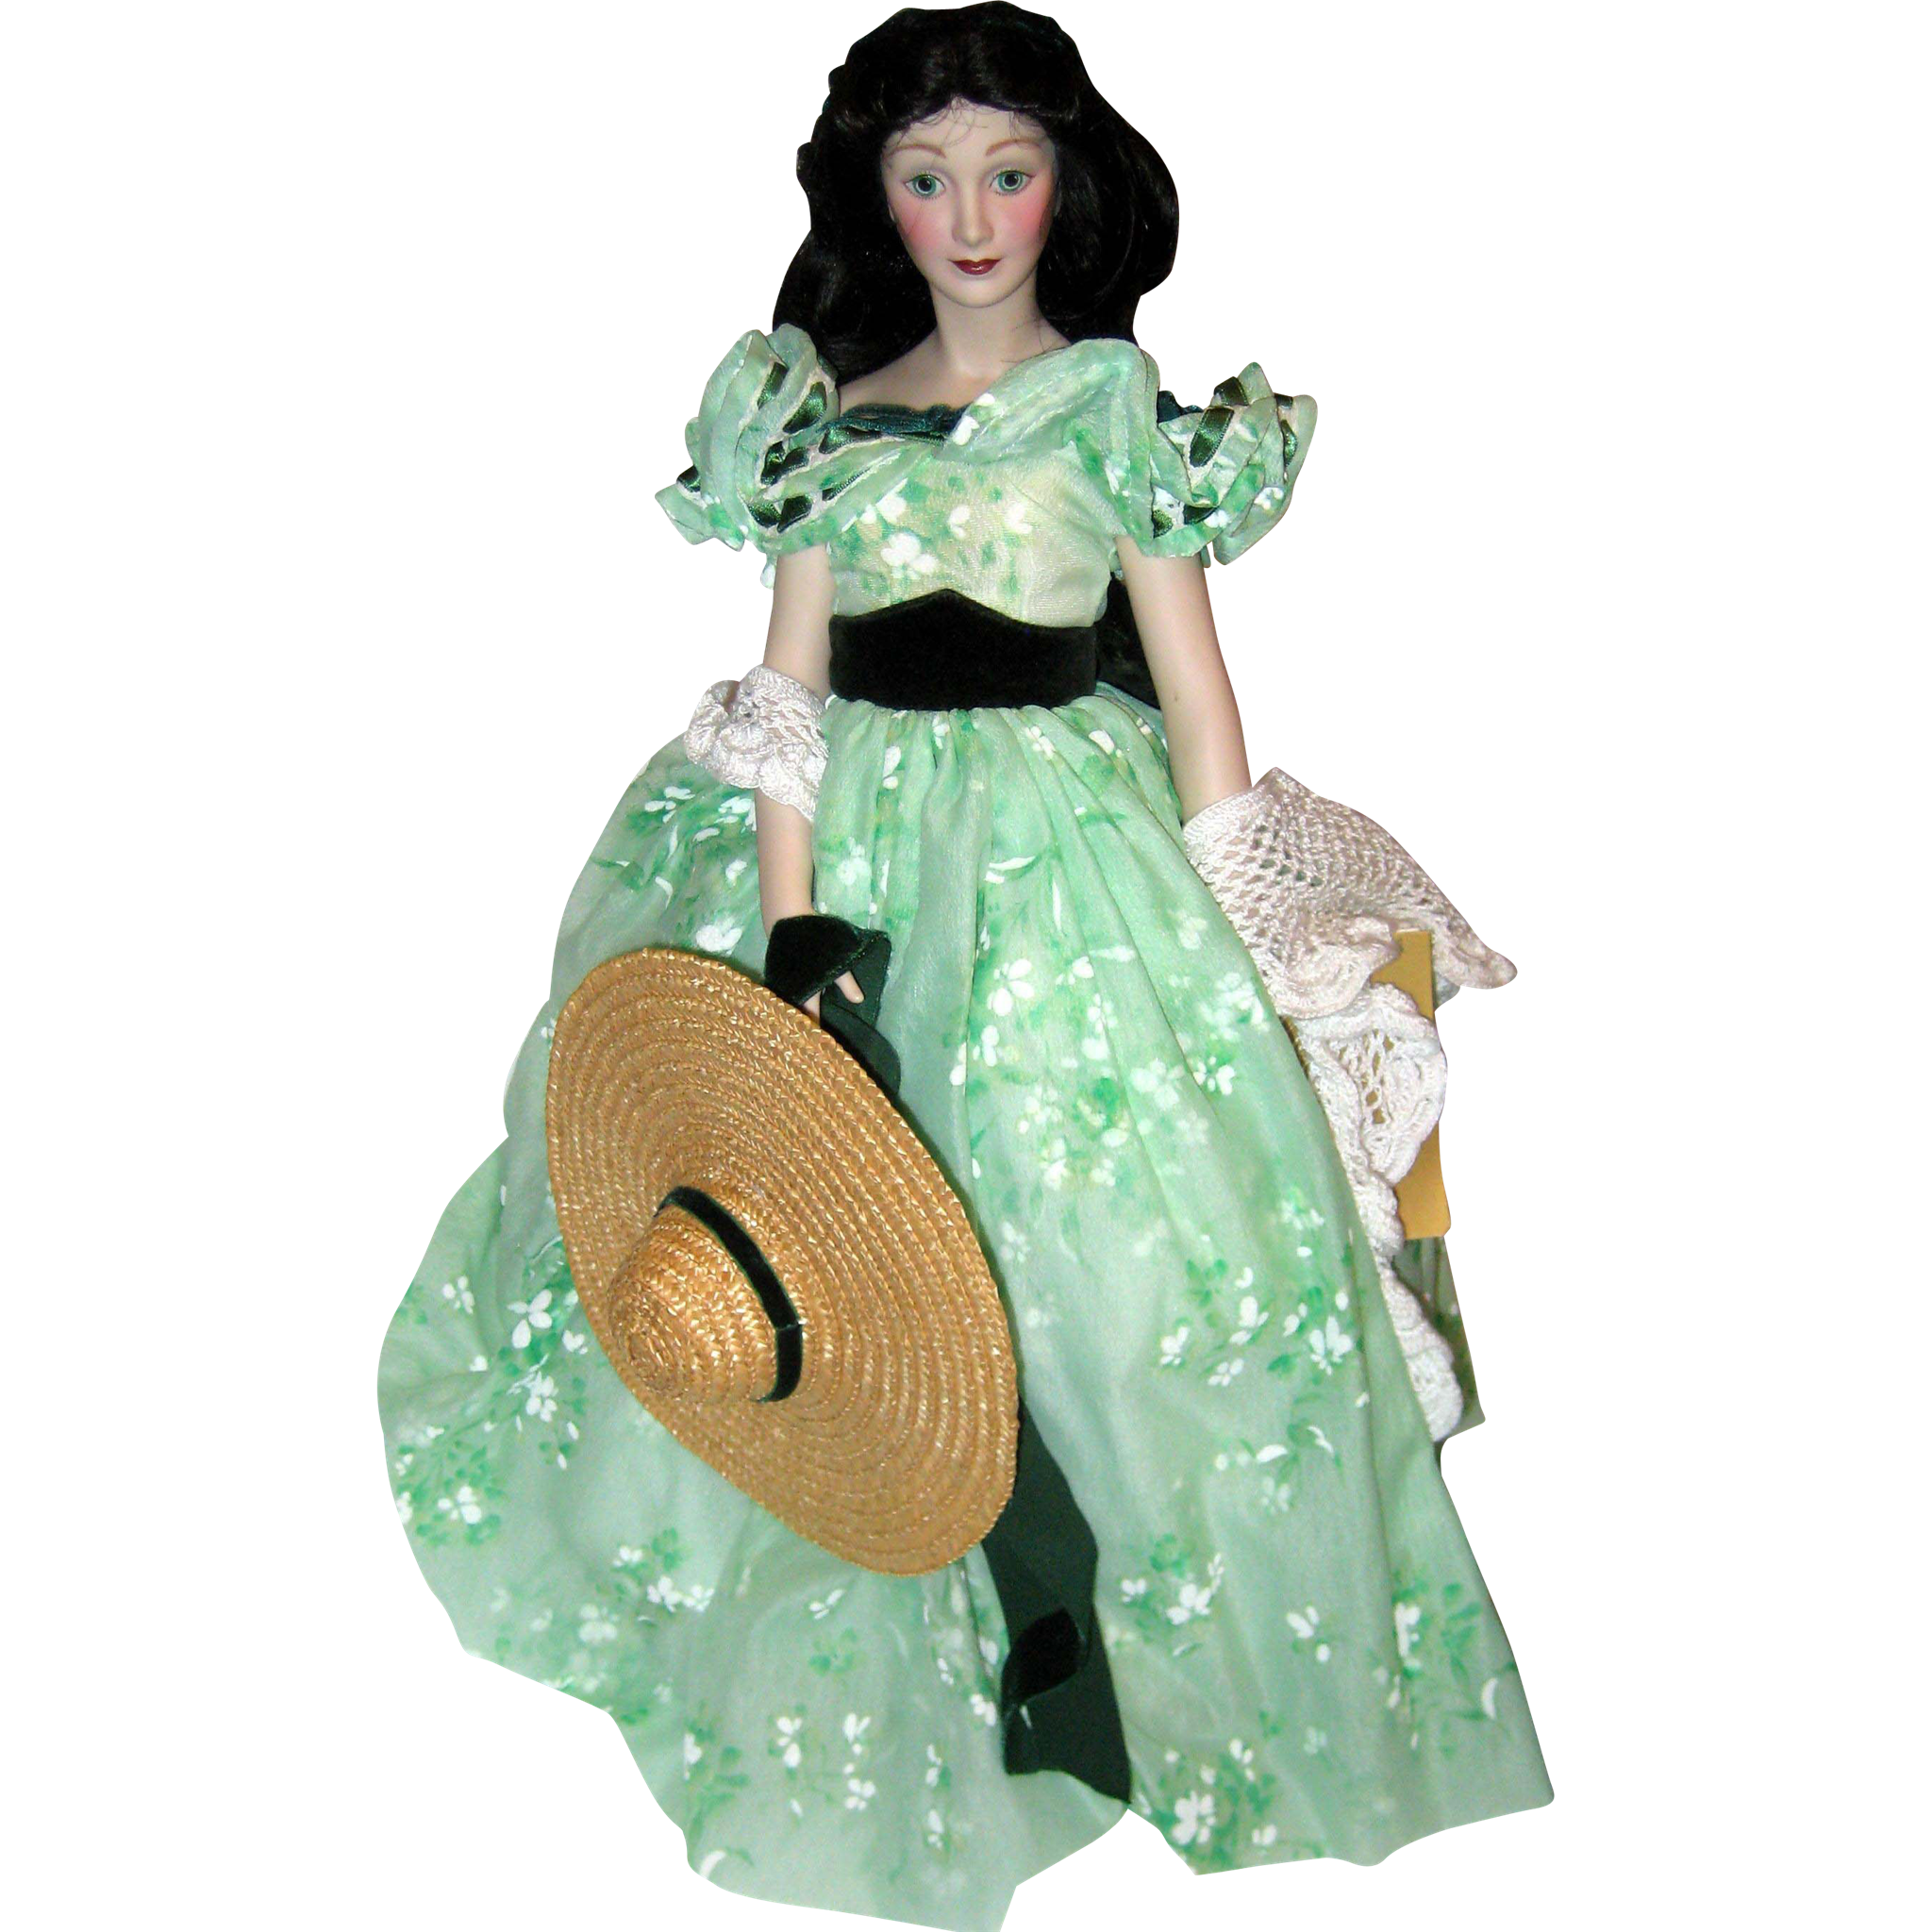 """18"""" Porcelain Franklin Mint Heirloom Doll - Vivien Leigh as Scarlett O'Hara in Gone with the Wind"""